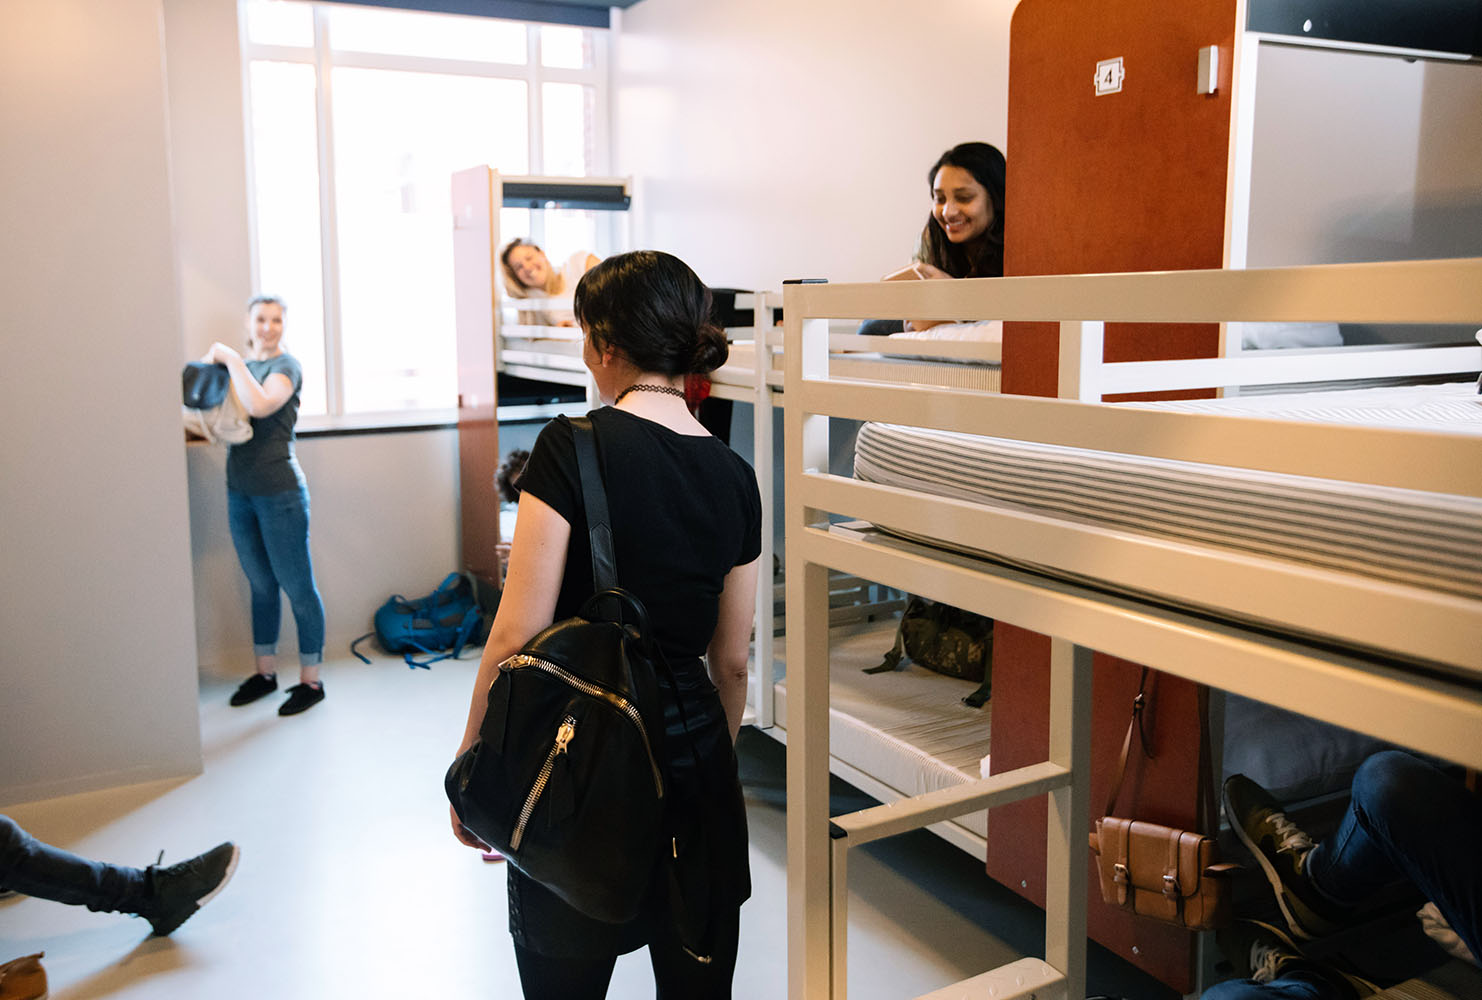 students in dorm room with bunk beds